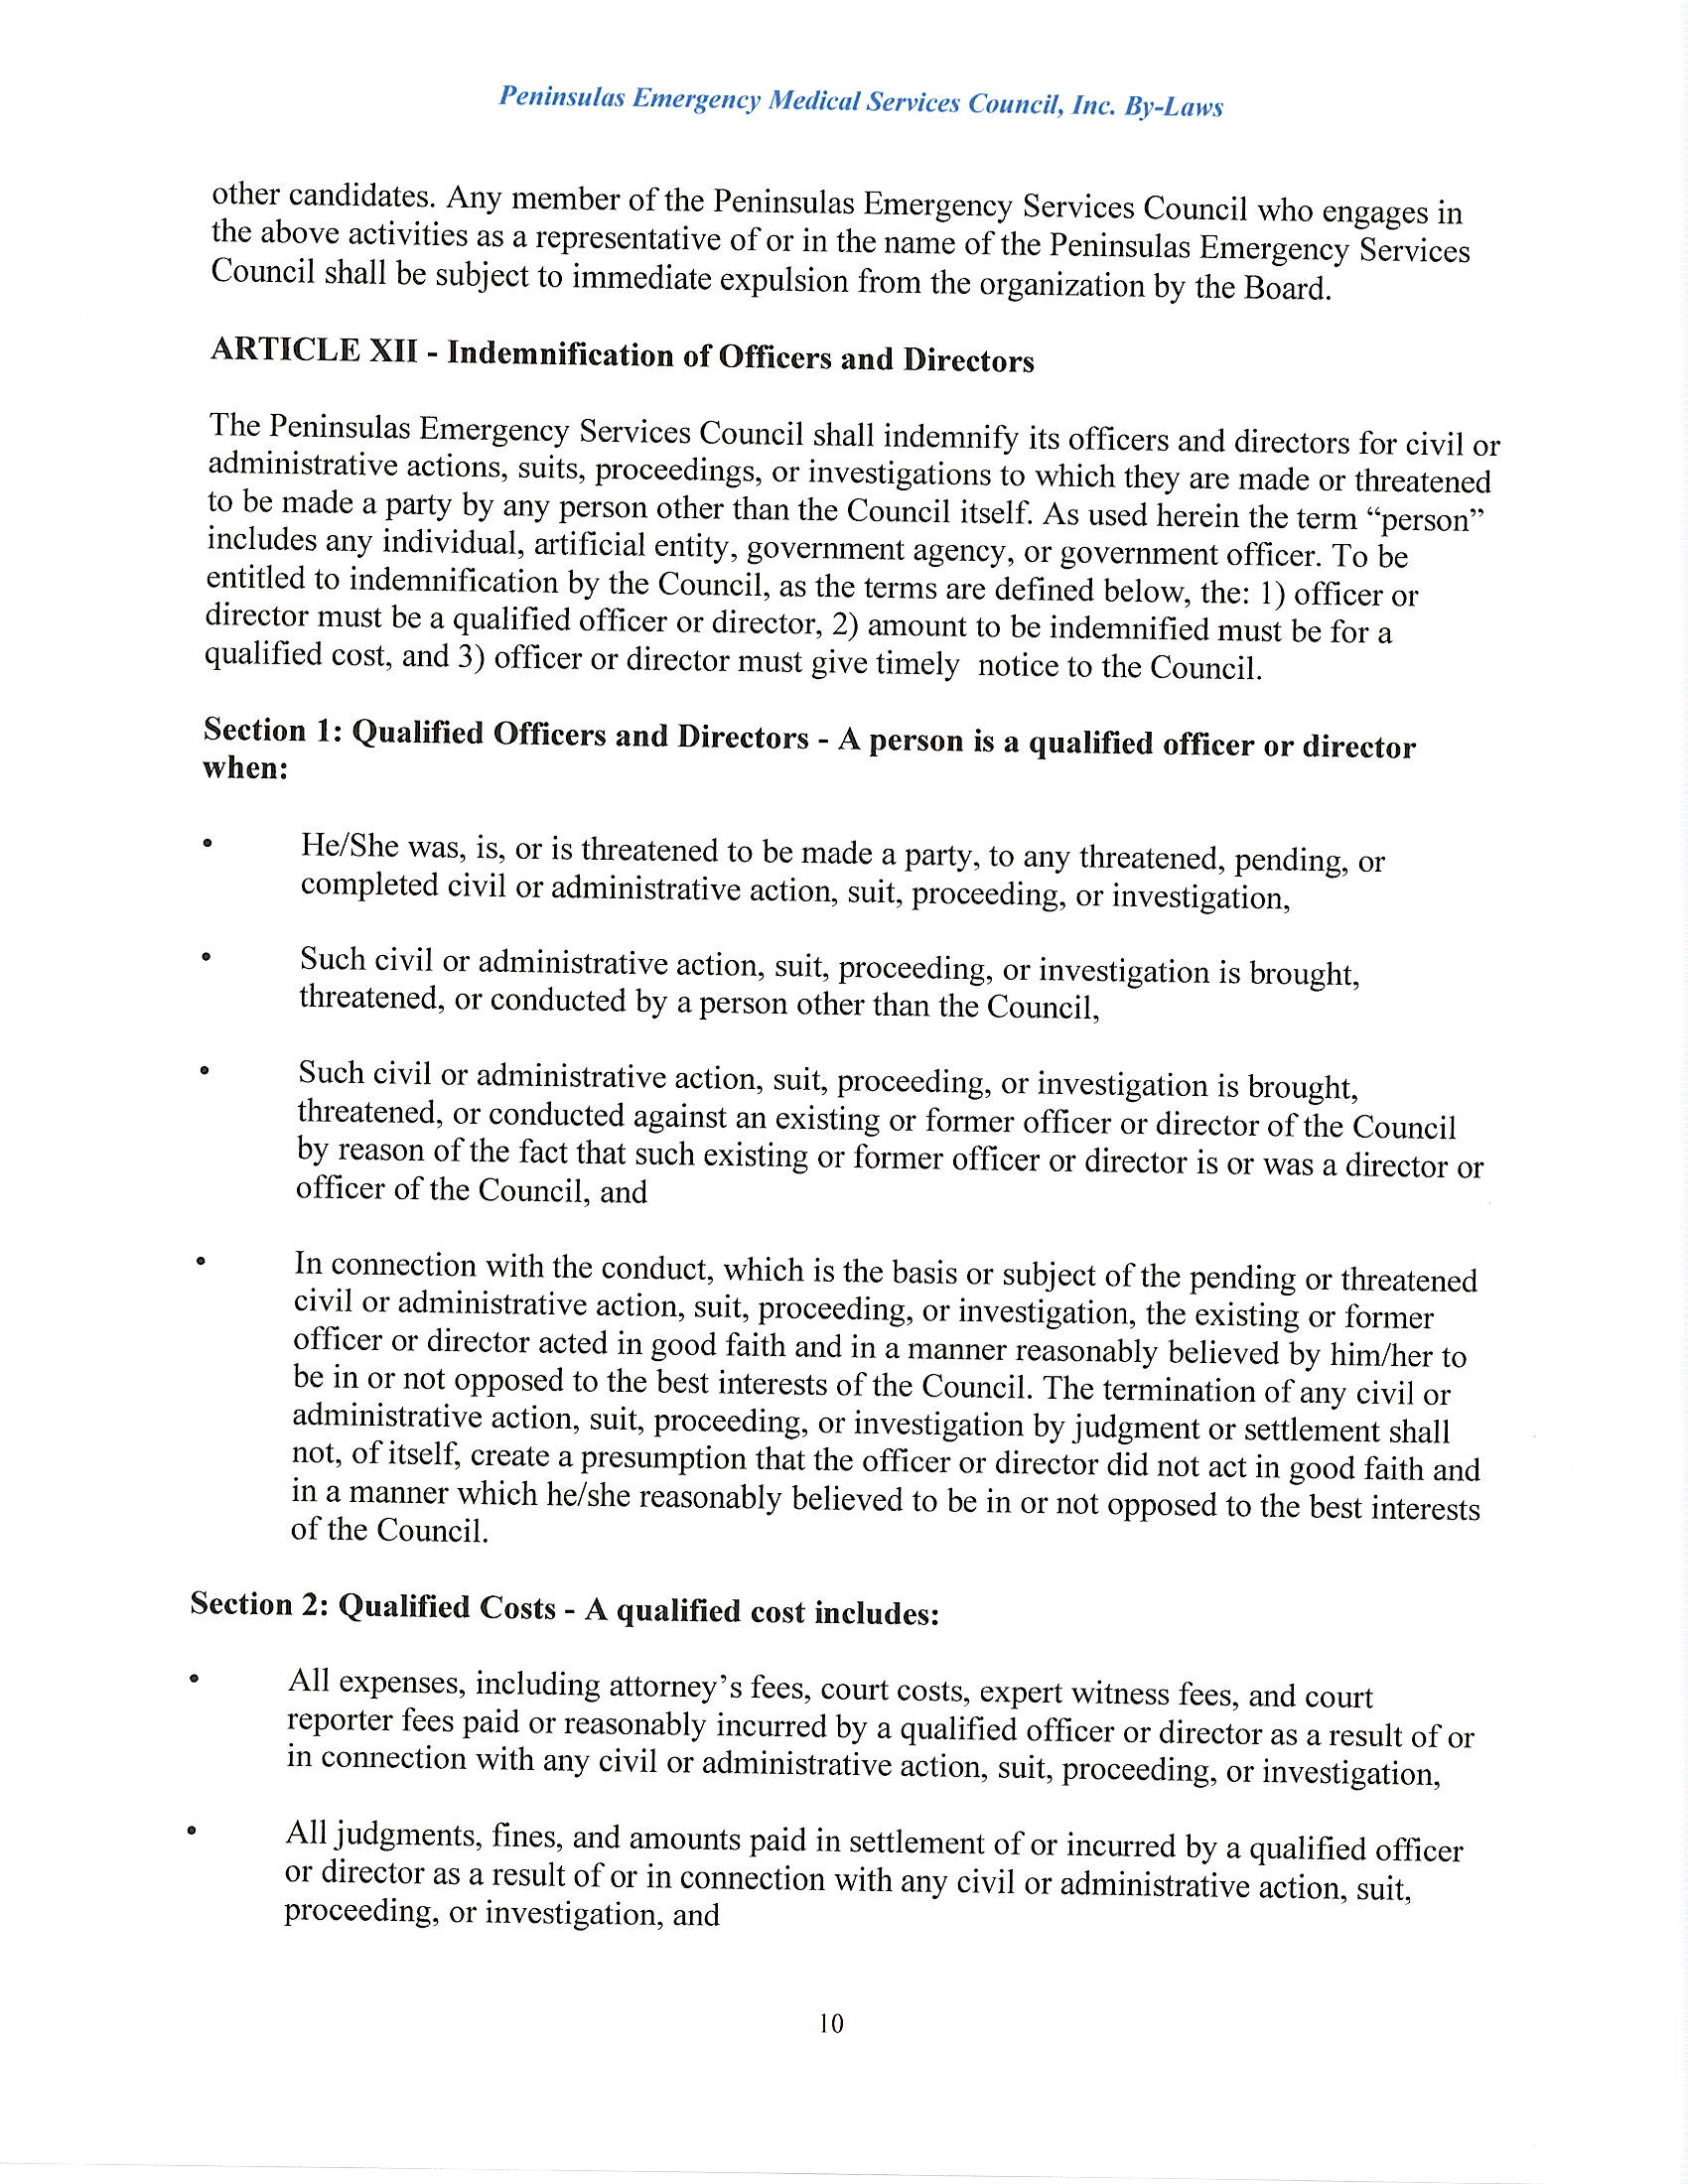 PEMS Bylaws 9 19 18 Page 10